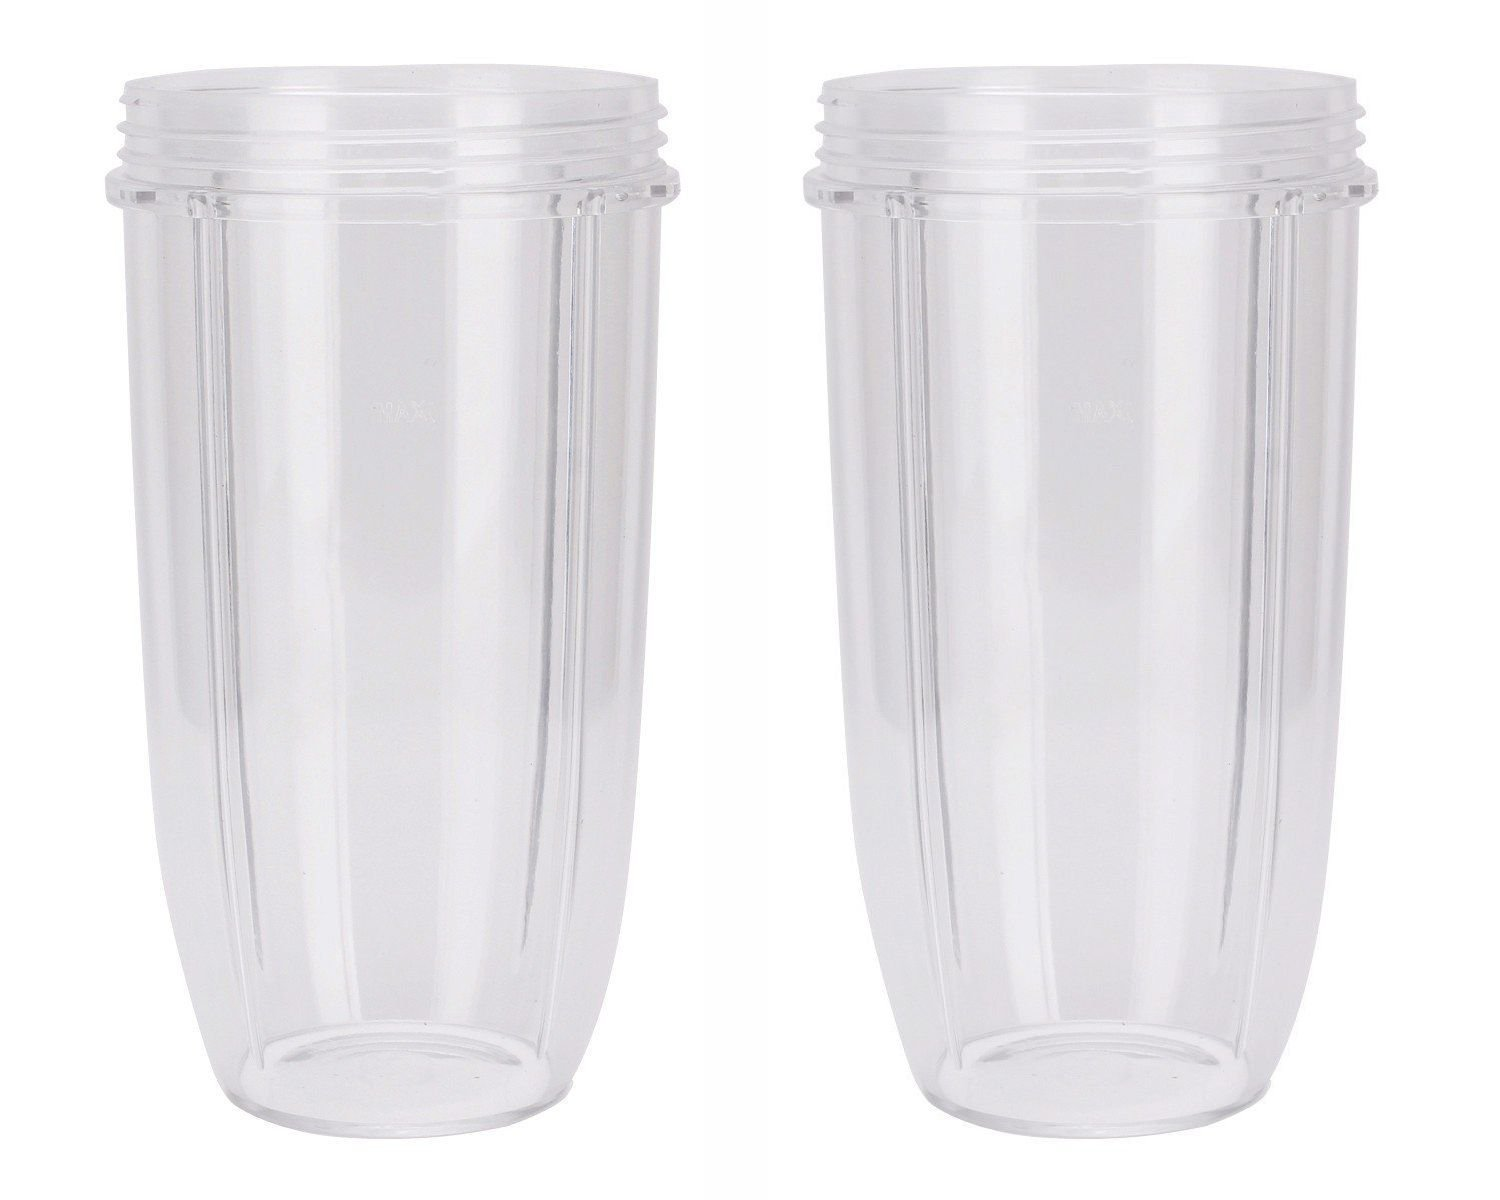 Preferred Parts Huge Replacement Cups for NutriBullet High-Speed Blender/Mixer, 32oz NutriBullet Cup - Pack of 2